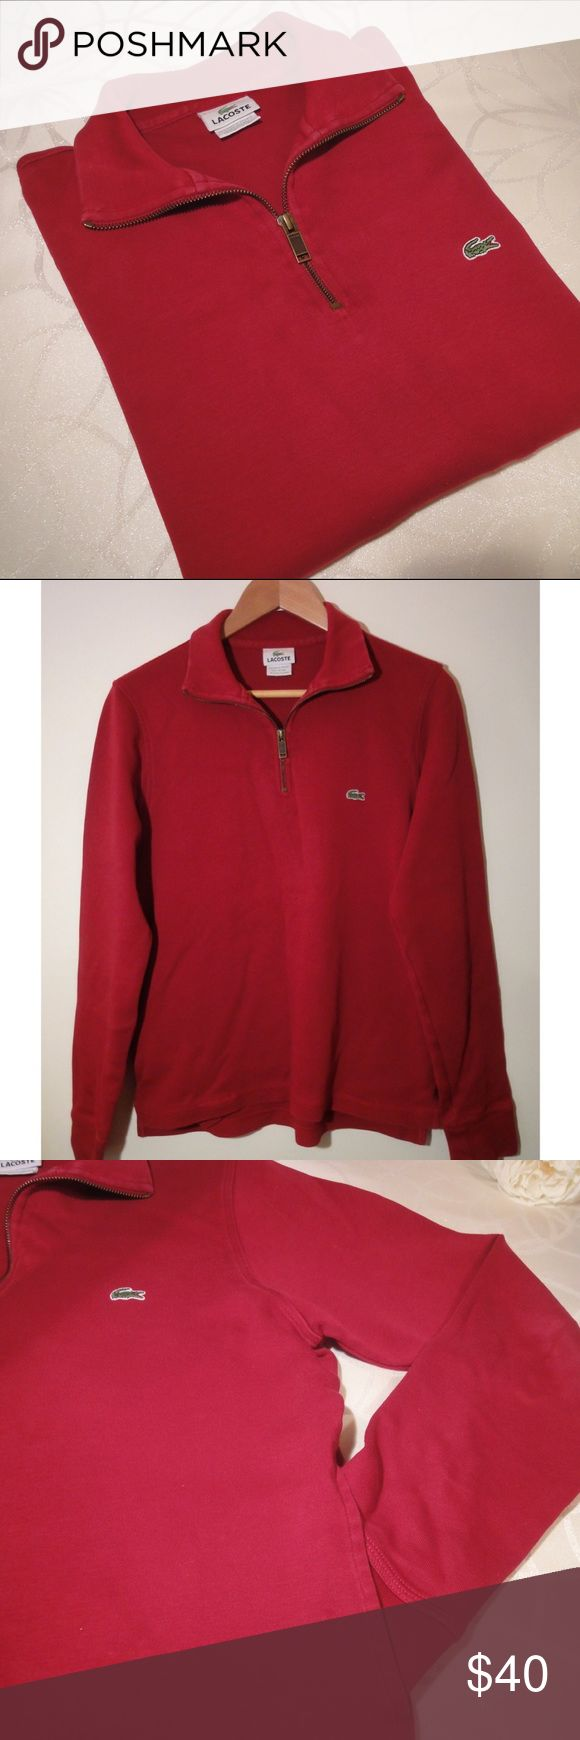 Men's Half-Zip LACOSTE Sweater Excellent Lacoste half-zip sweater in a burgundy/red color, excellent conditions! This is such a great item, but unfortunately it has been outgrown. What I love about this sweater is that it has kept its color, wash after wash, there has been no fading! Has two side pockets. Lacoste Sweaters